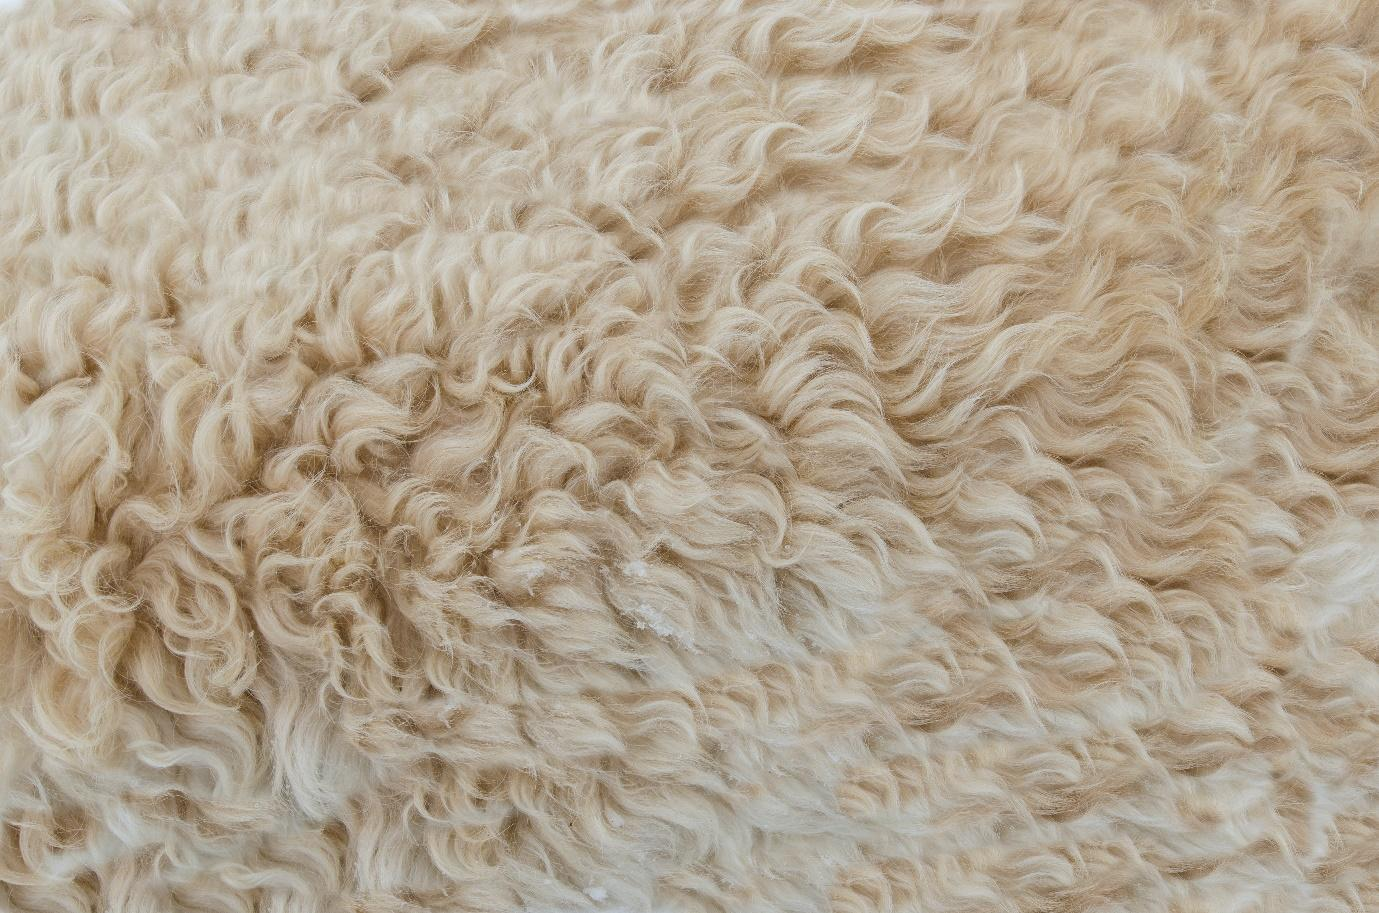 A picture containing sheep, mammal, grass, looking  Description automatically generated